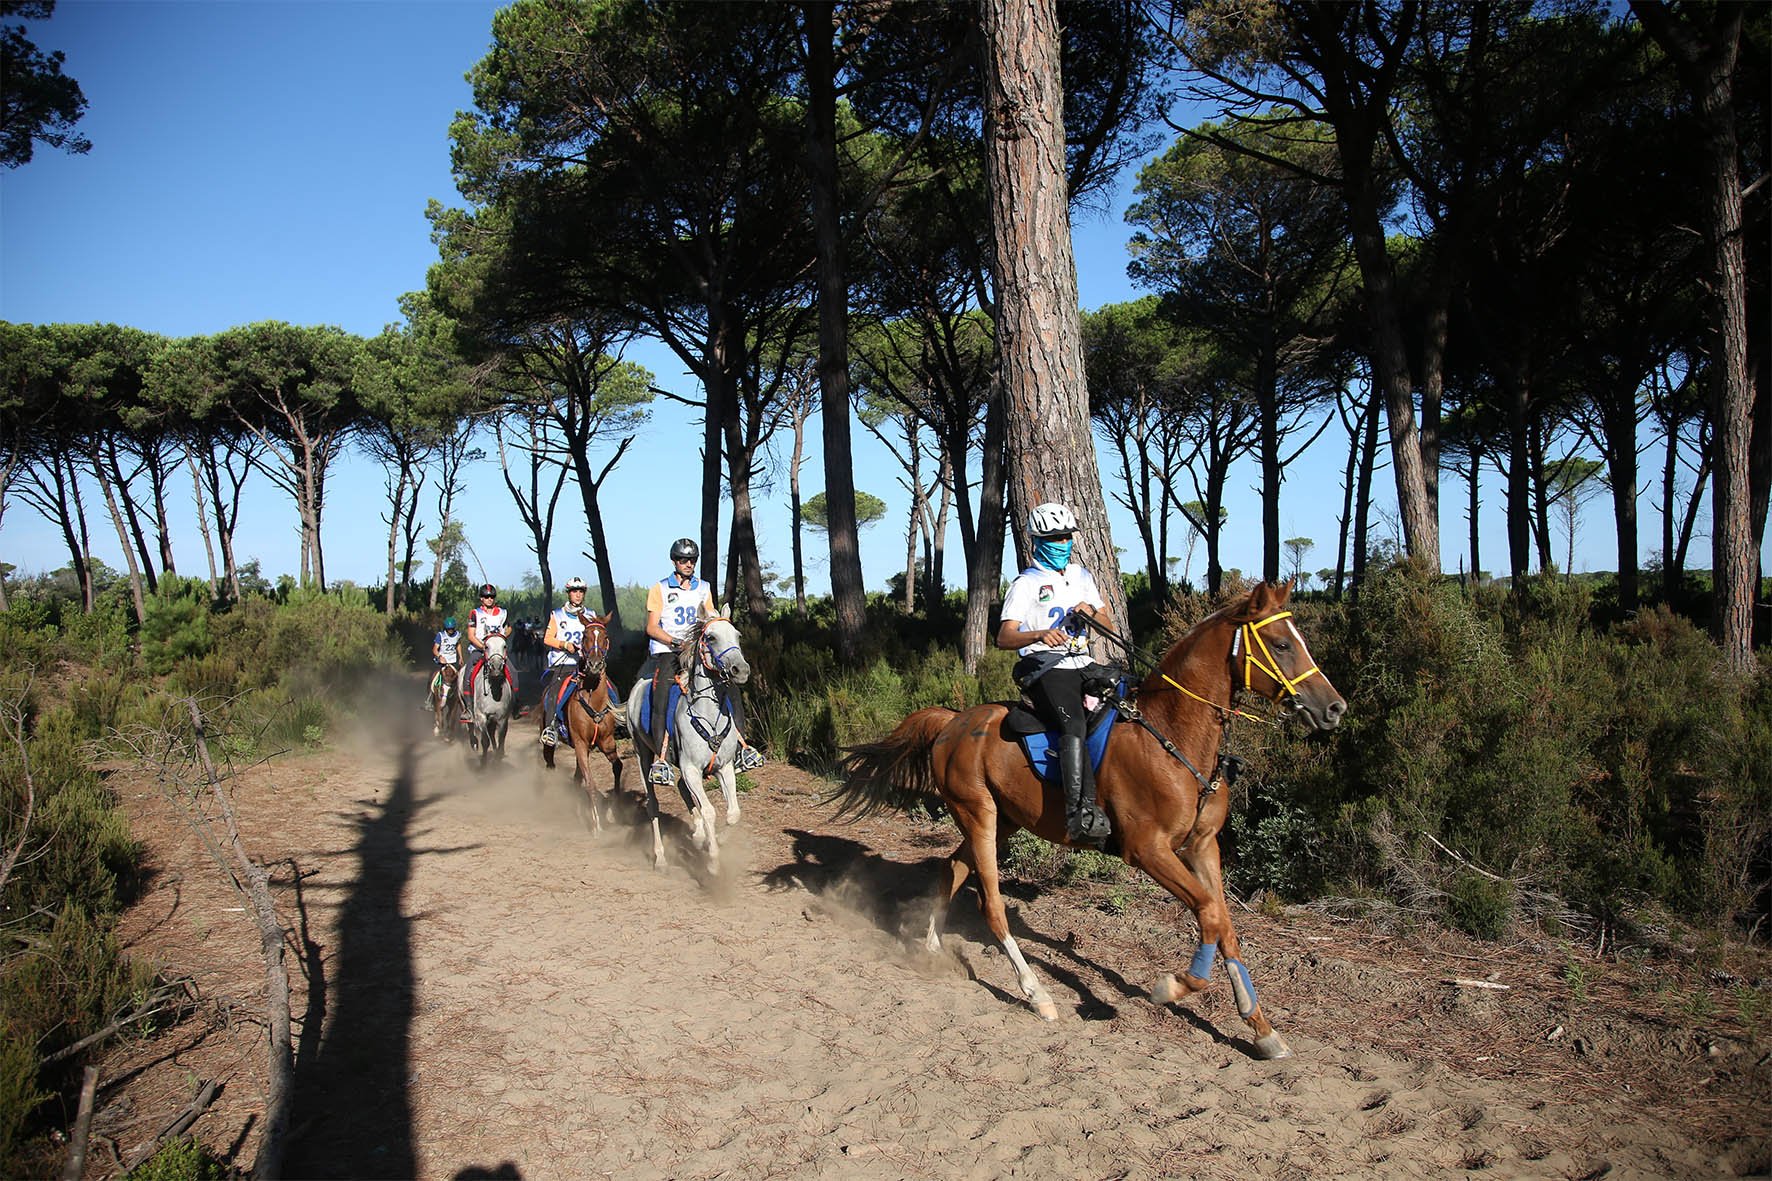 In migliaia a San Rossore, Toscana Endurance Lifestyle ha vinto